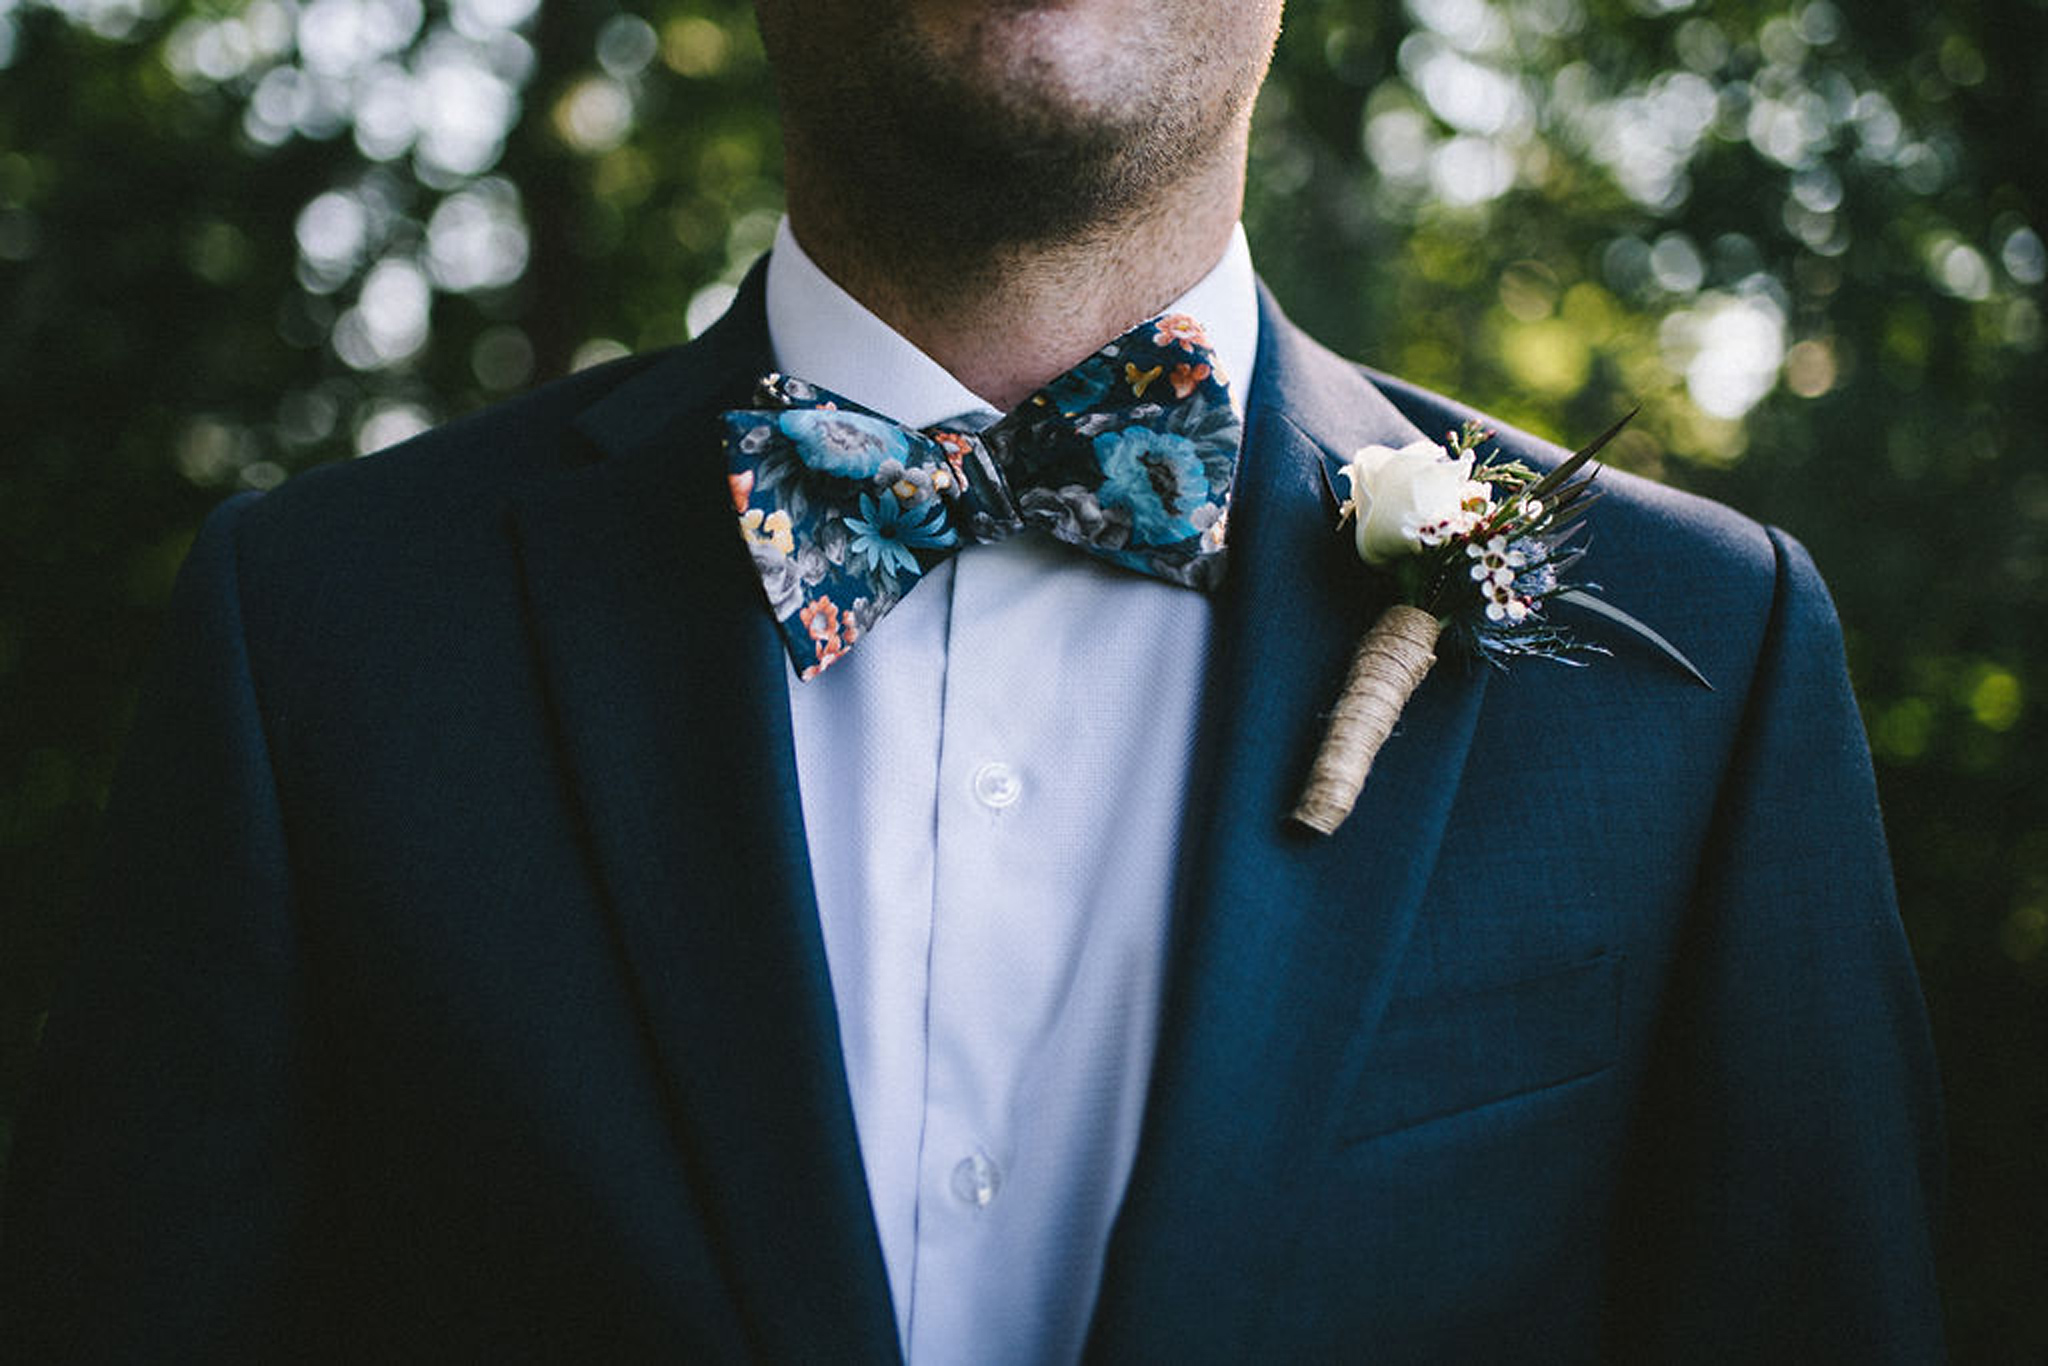 Floral bowtie groom style at camp wedding in Parry Sound